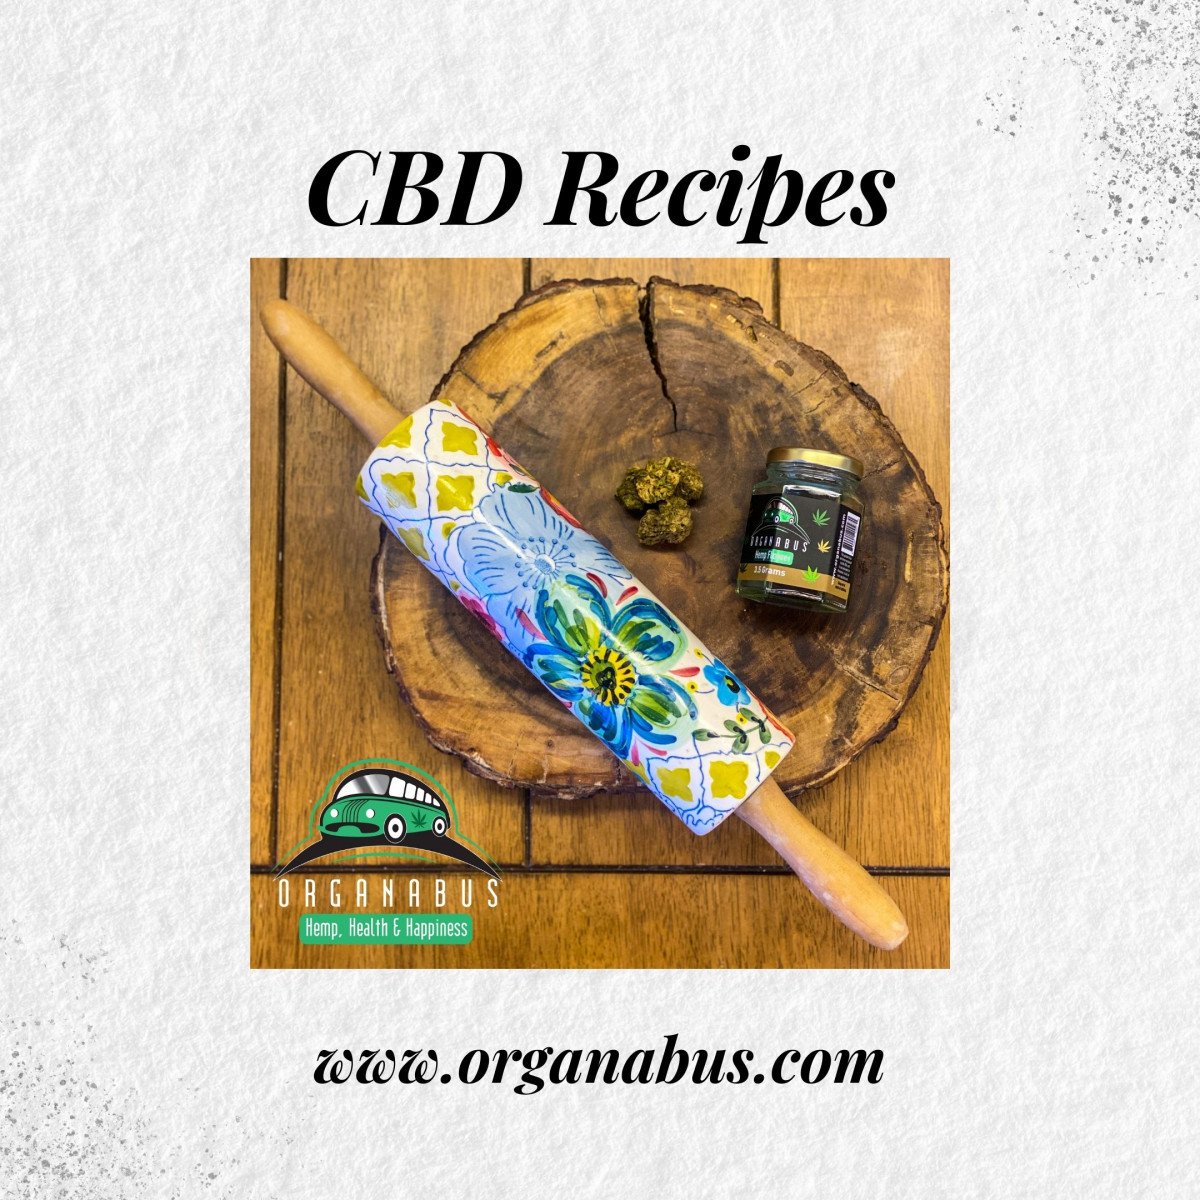 CBD Recipes from Boston Magazine!